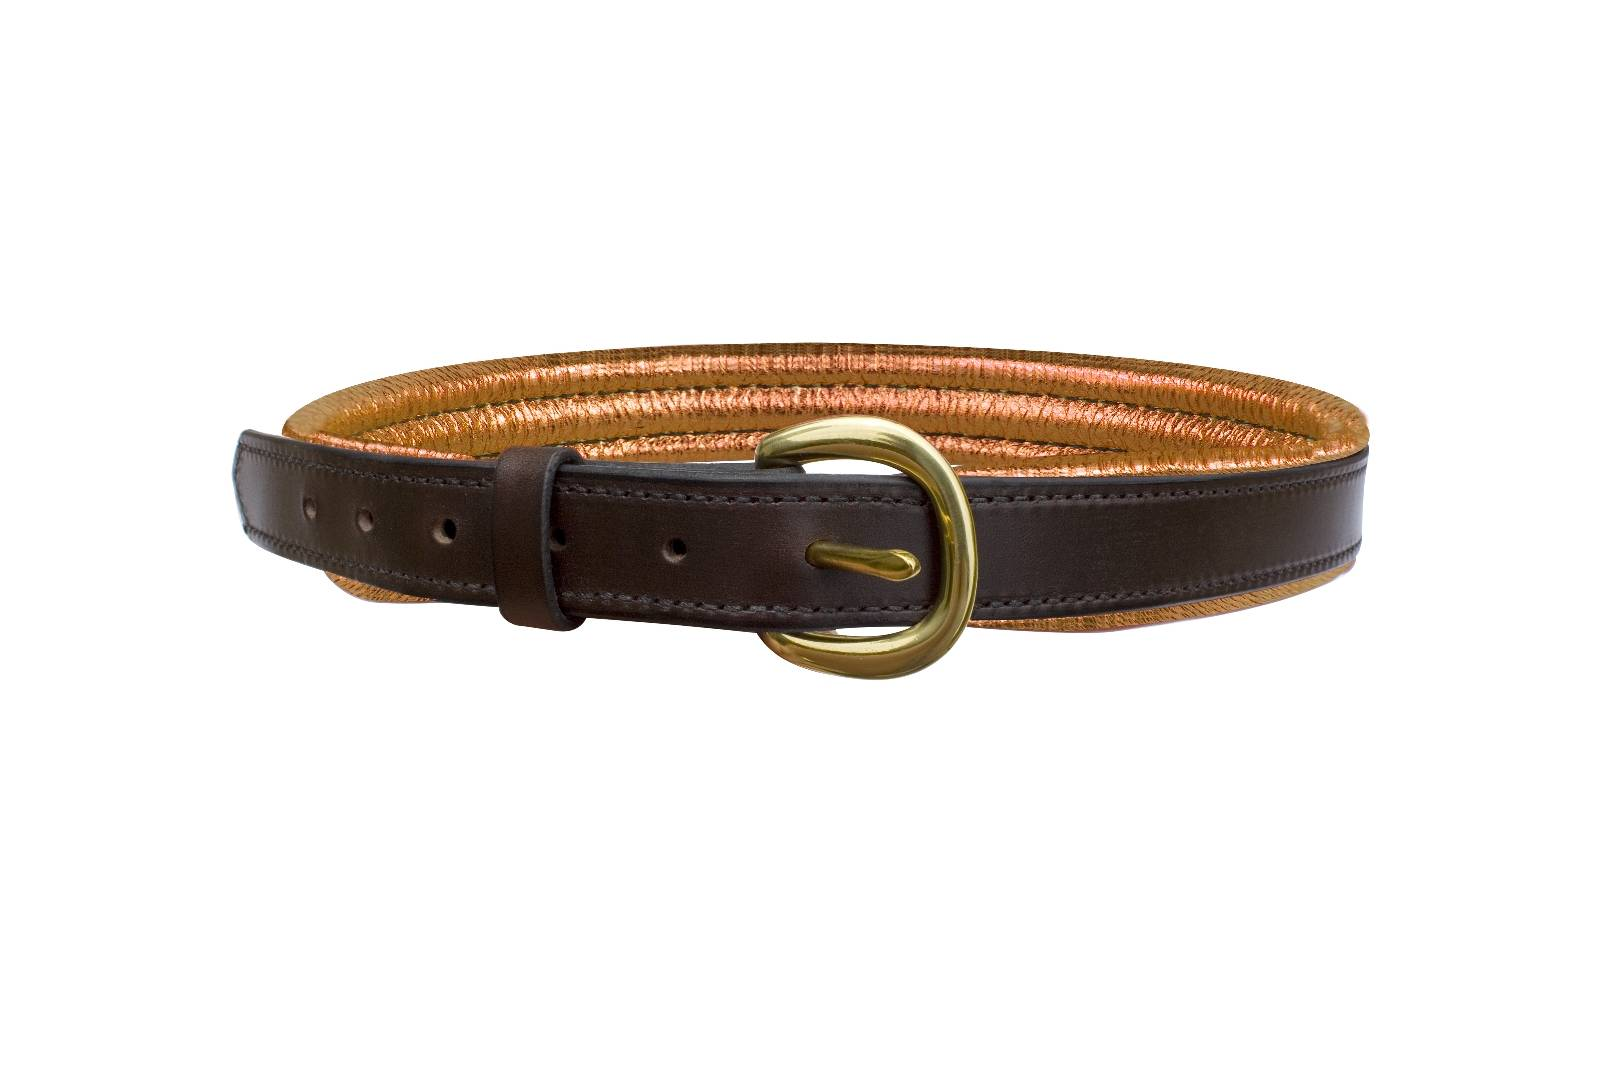 Perris Metallic Wide Padded Leather Belt - Ladies